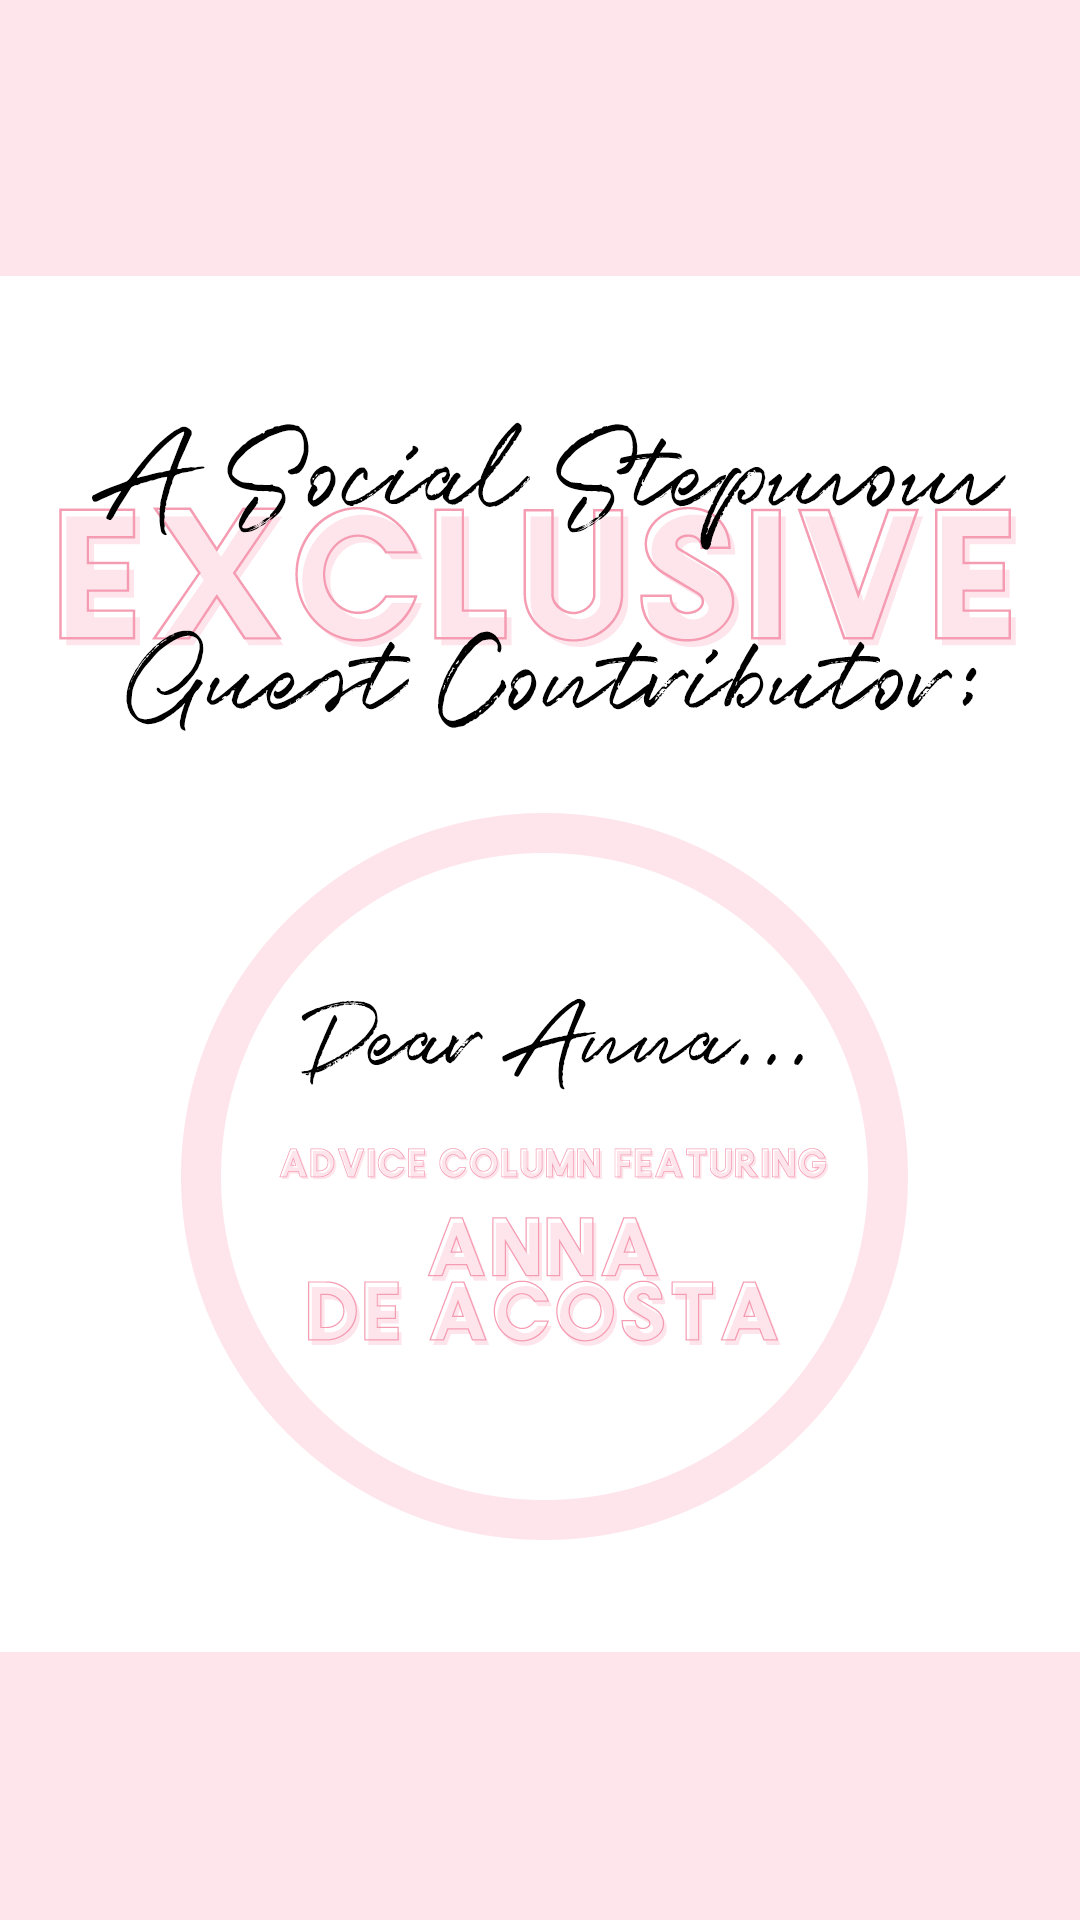 'Dear Anna…' Our Monthly Advice Column!